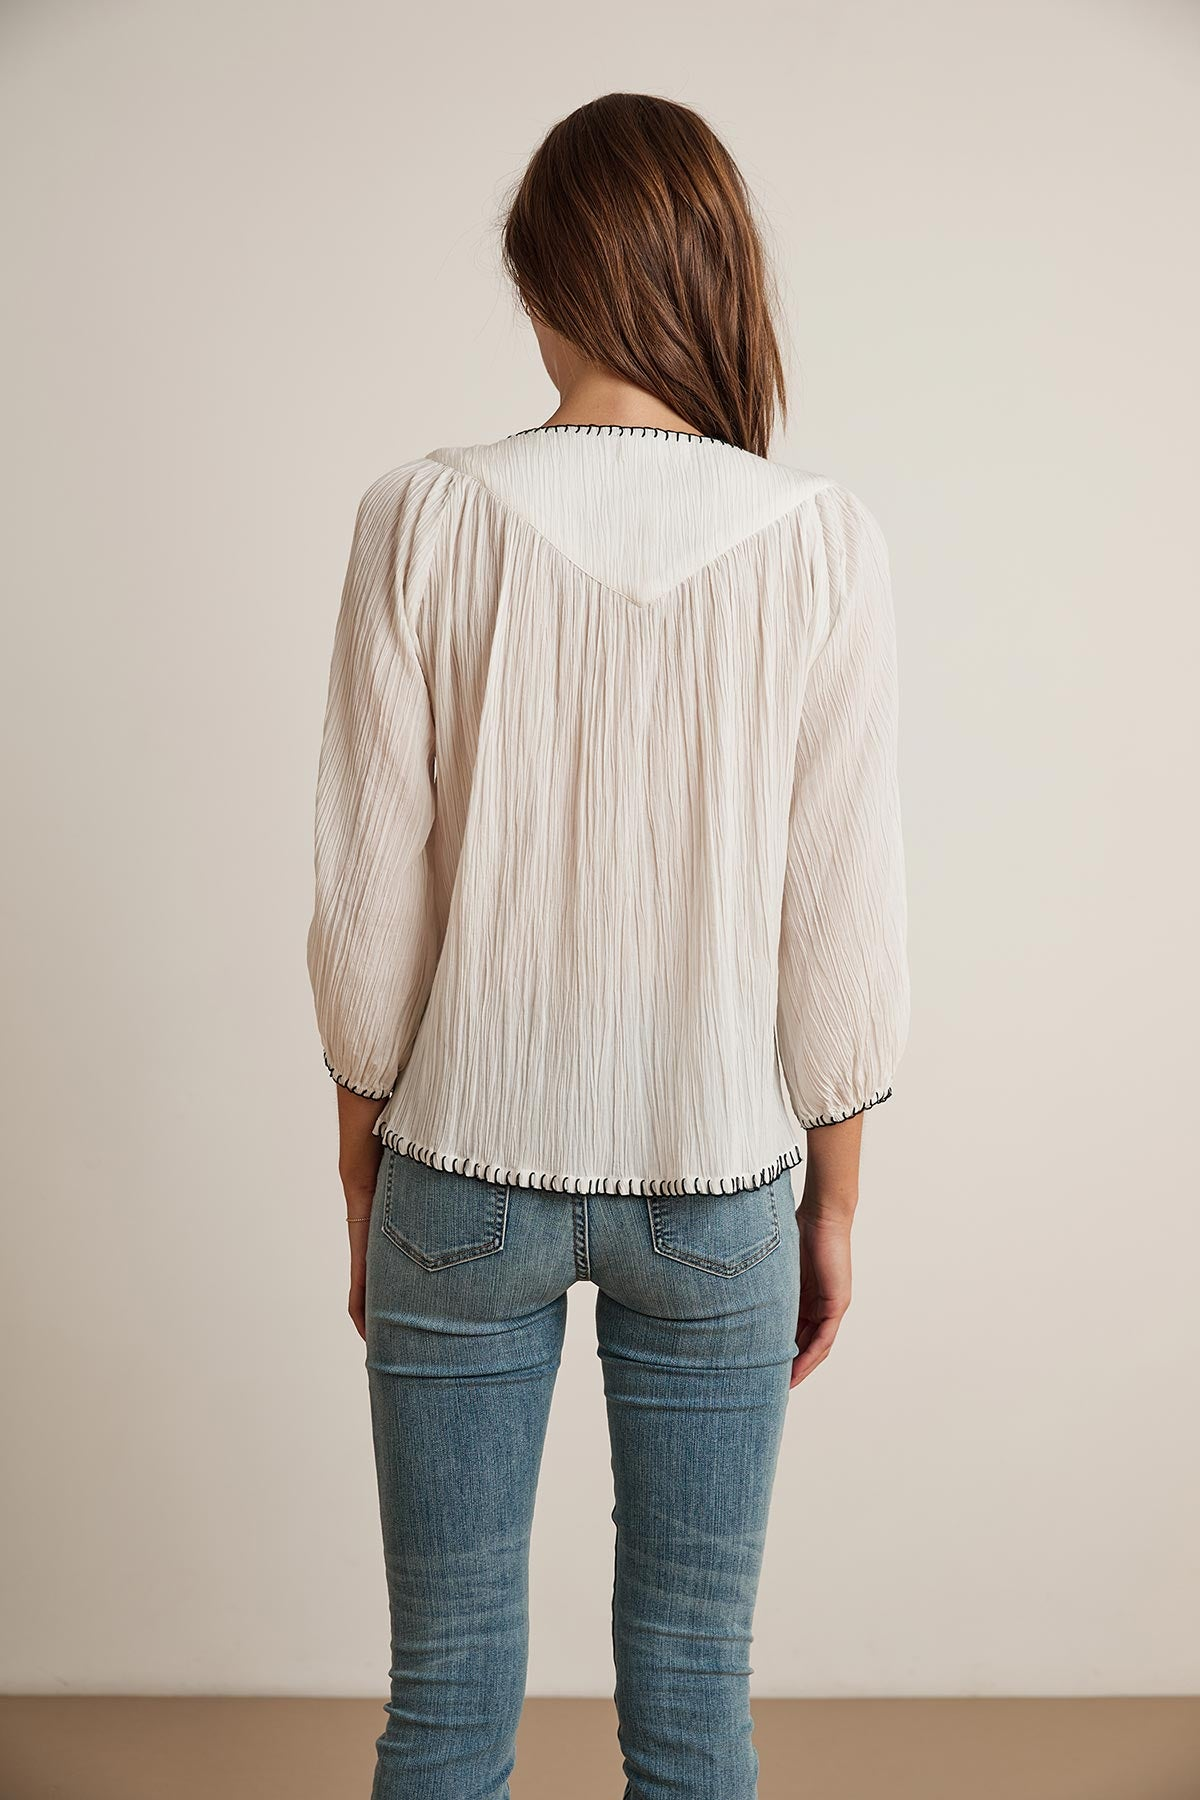 CASSIE BLANKET STITCH PEASANT TOP